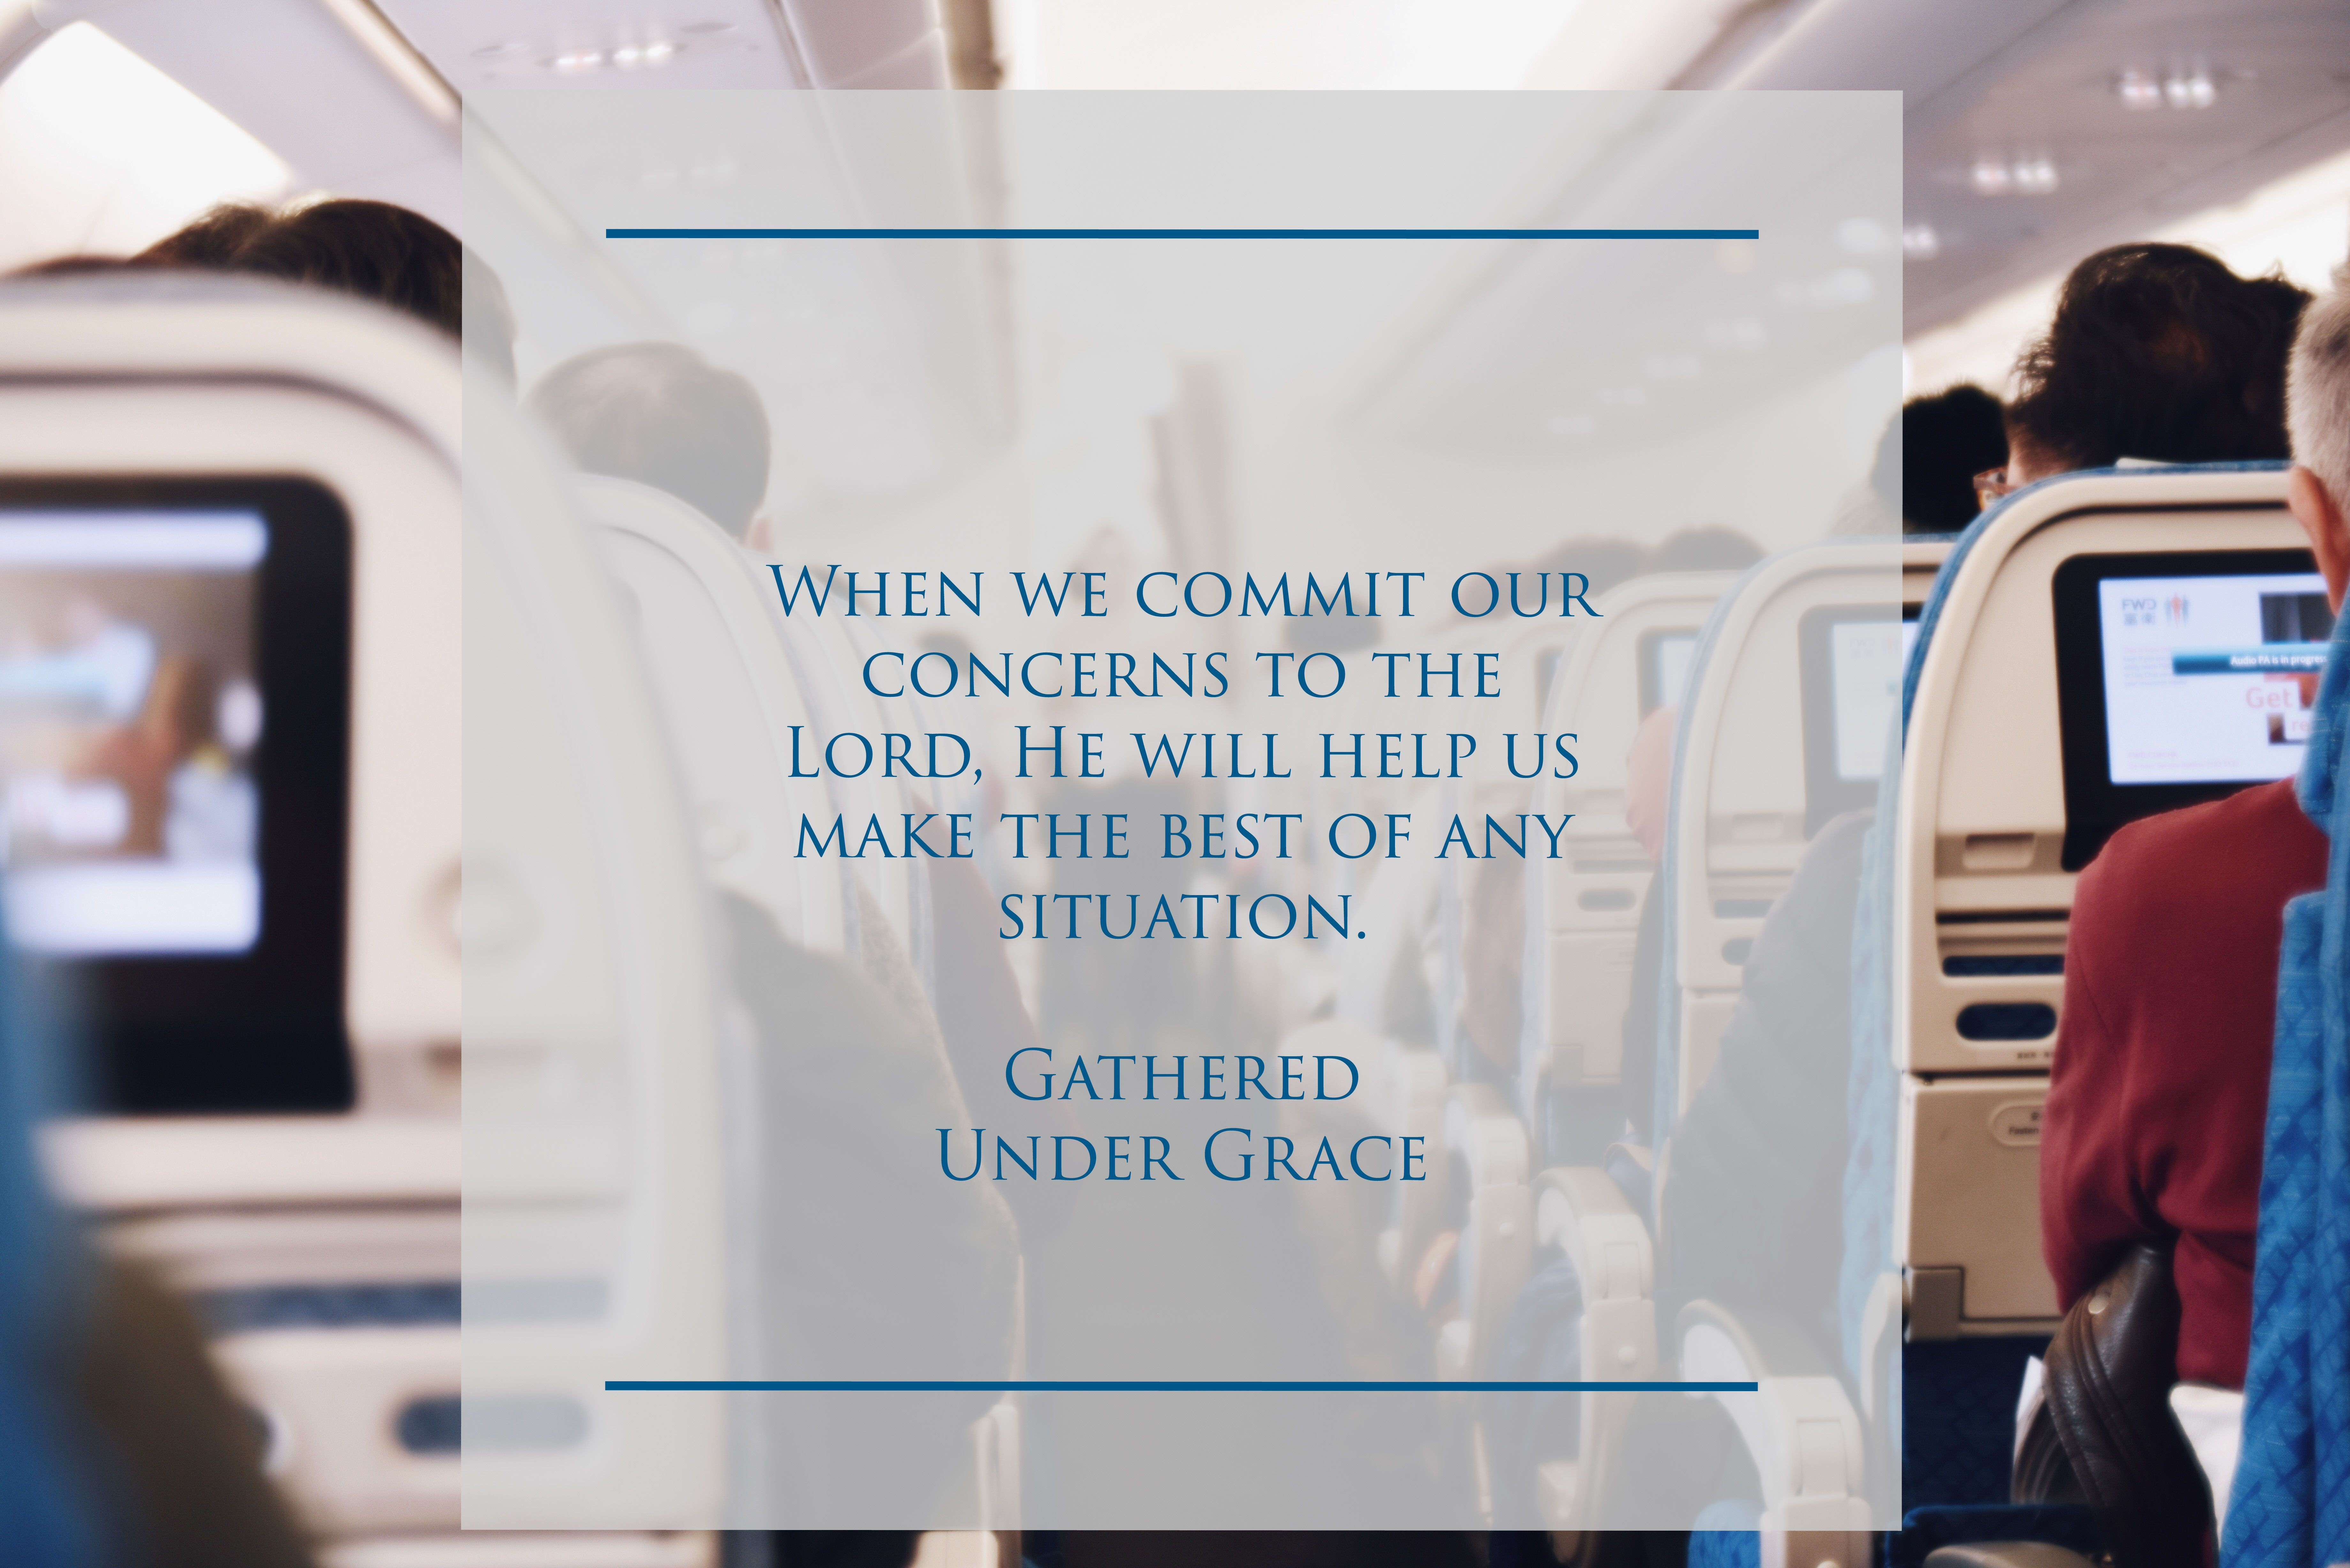 inflight gatheredundergrace Daily devotional